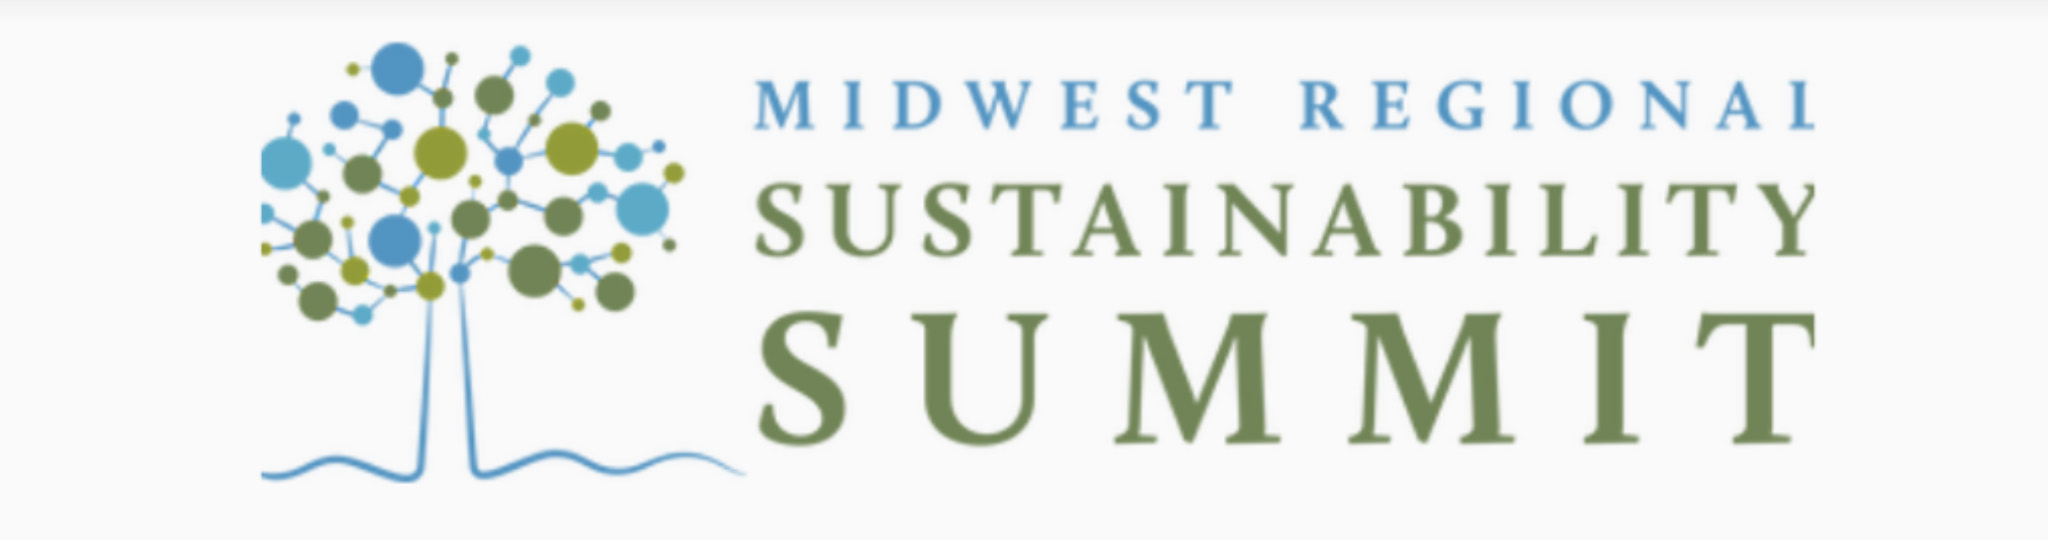 Mogalixe Green umbrella  Midwest regional sustainability summit Sponsor